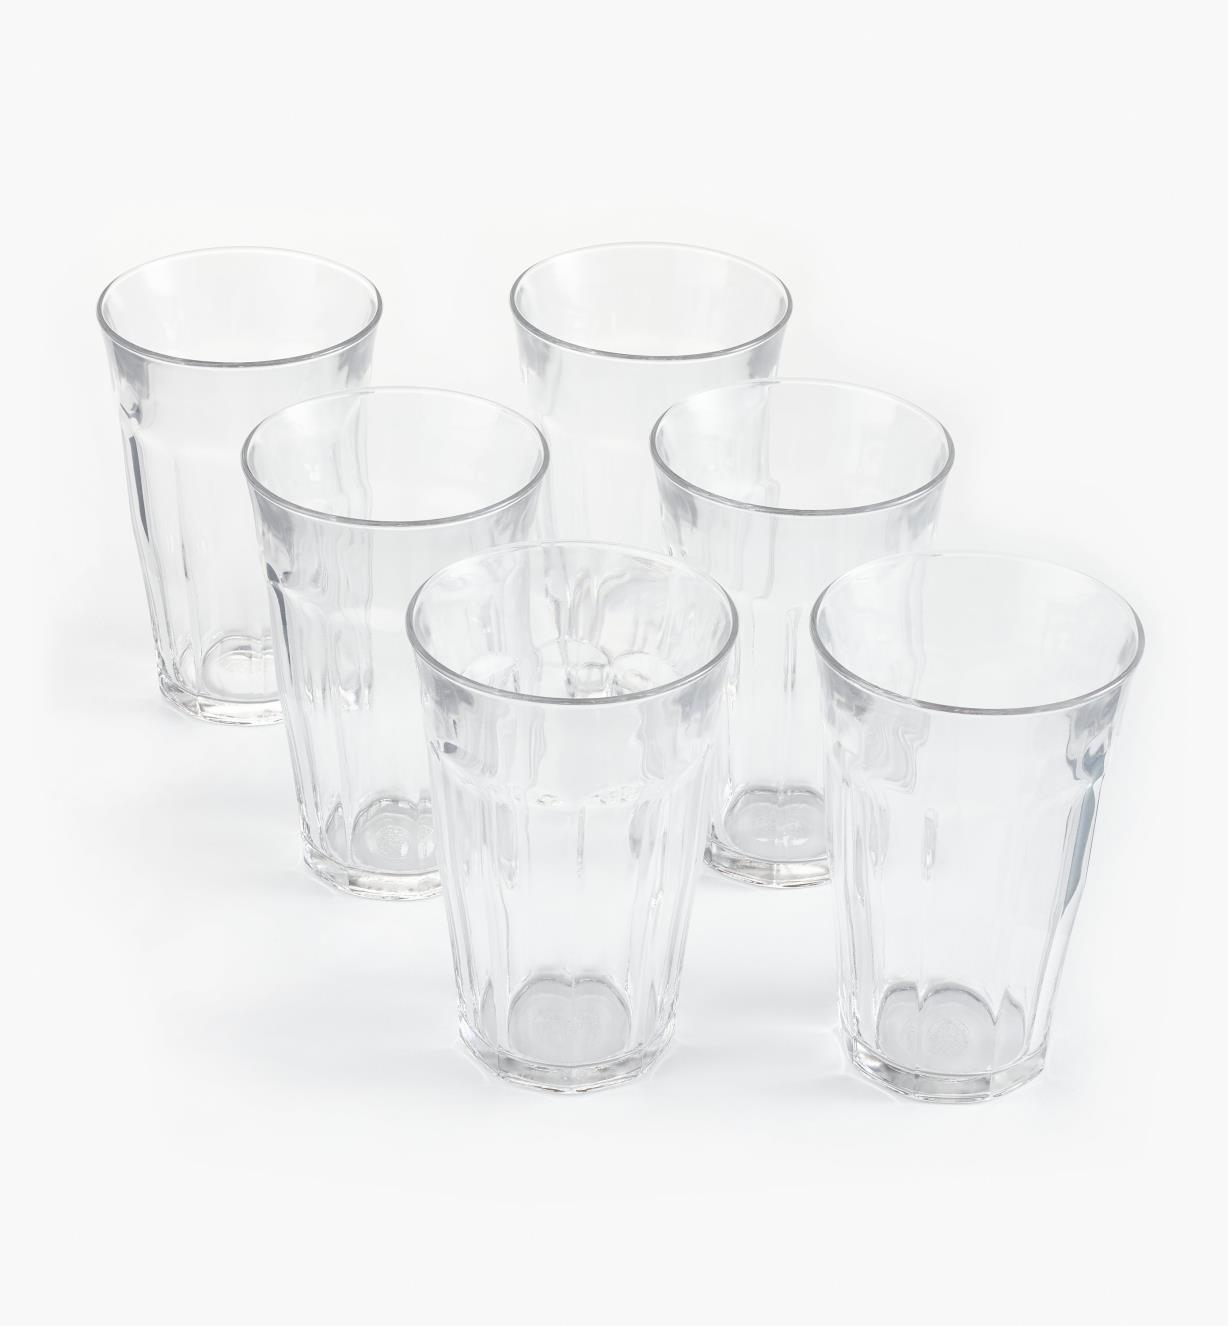 44K0808 - Duralex Picardie 500ml (16.9 fl oz) Glasses, set of 6